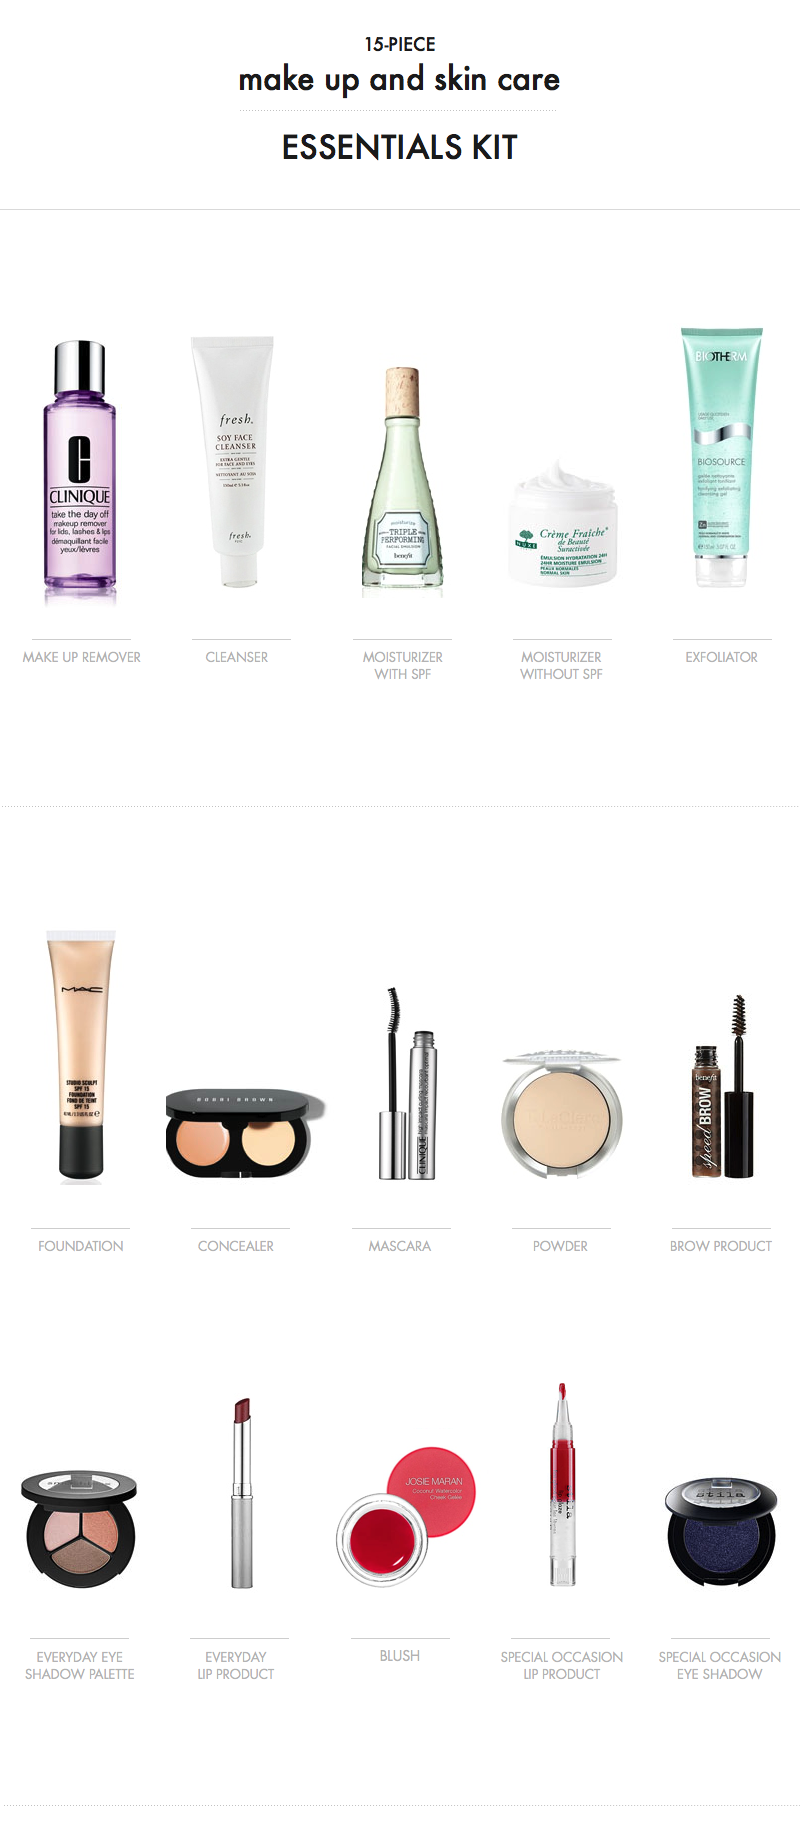 Product list:  Skin care – Clinique Take the day off Make up remover, Fresh Soy Face Cleanser, Benefit Triple Performing Facial Emulsion SPF 15, NUXE Creme Fraiche de Beaute, Biotherm Biosource Nettoyant Exfoliante. Make up  (first row)– MAC Studio Sculpt Foundation, Bobbi Brown Creamy Concealer Kit, Clinique High Impact Curling Mascara, T. LeClerc Pressed Powder, Benefit Speed Brow. Make up  (second row)– Smashbox Photo Op Eye Shadow Trio in Multi-Flash, Clinique Almost Lipstick in Black Honey, Josie Maran Coconut Watercolor Cheek Gelee in Pink Escape, Stila Lip Glaze in Cranberry, Stila Eye Shadow in Azure.